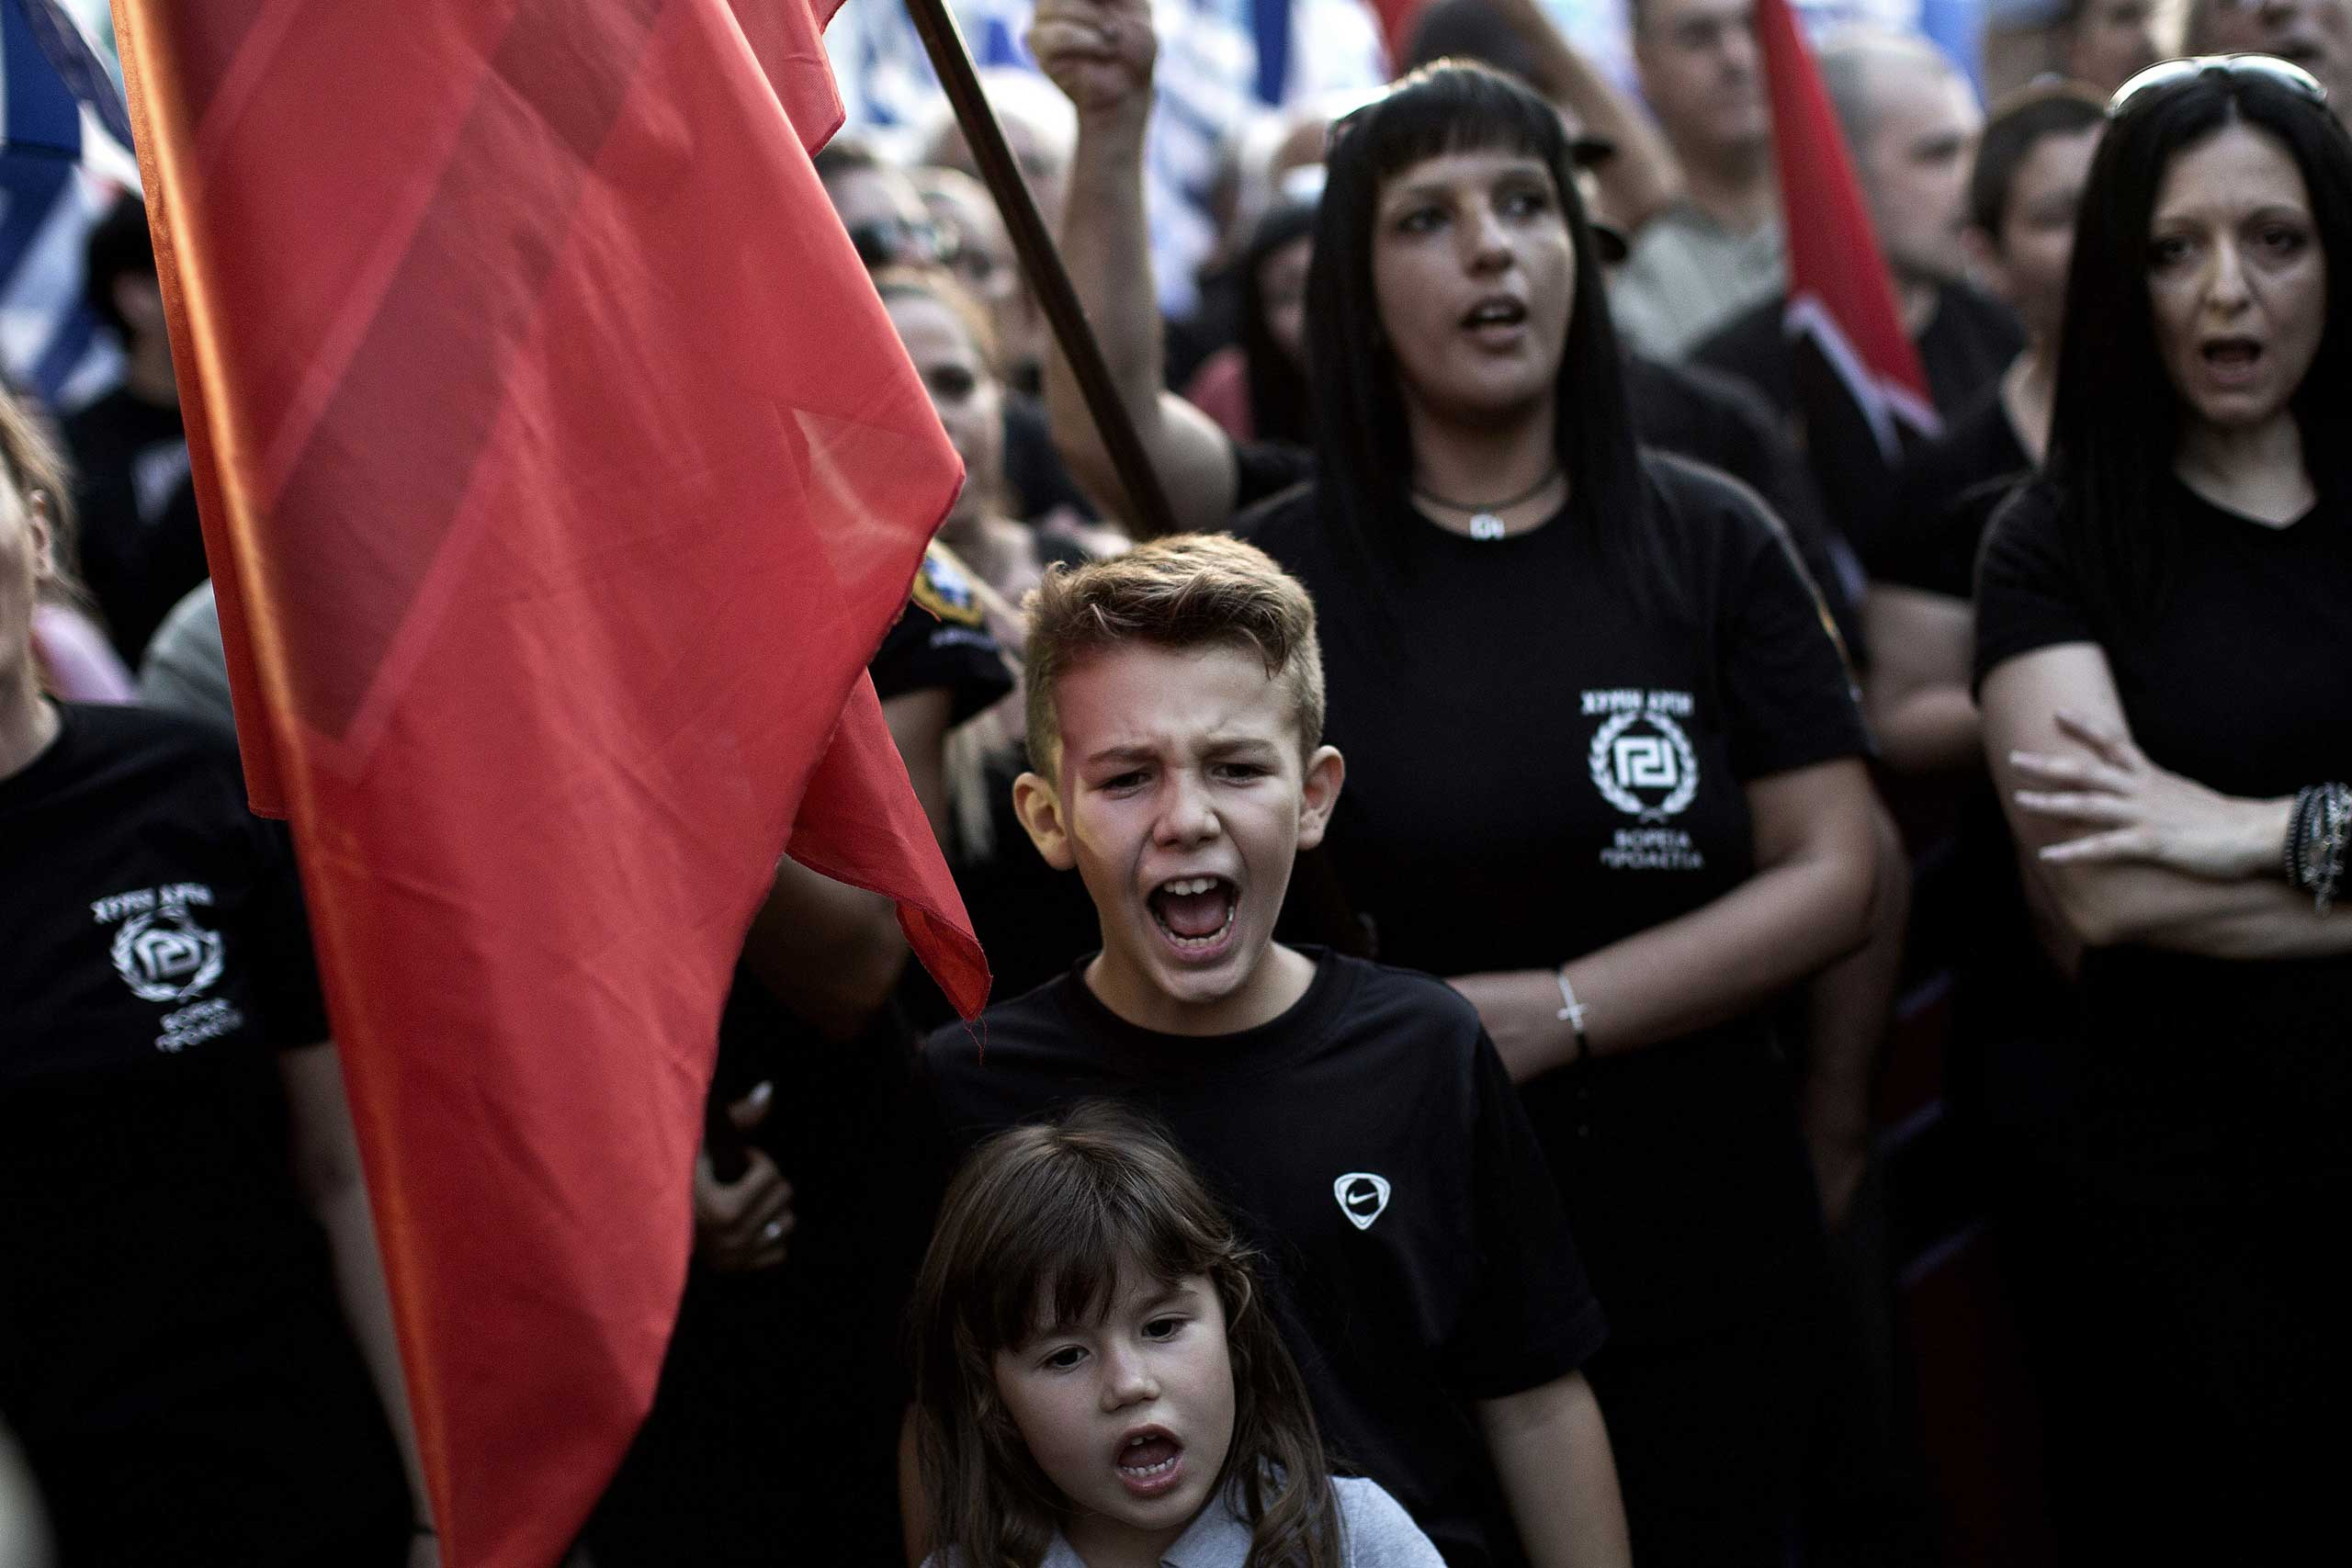 Supporters of the Greek Golden Dawn extreme right party shout slogans during a pre-election rally in Athens, Sept. 16, 2015.